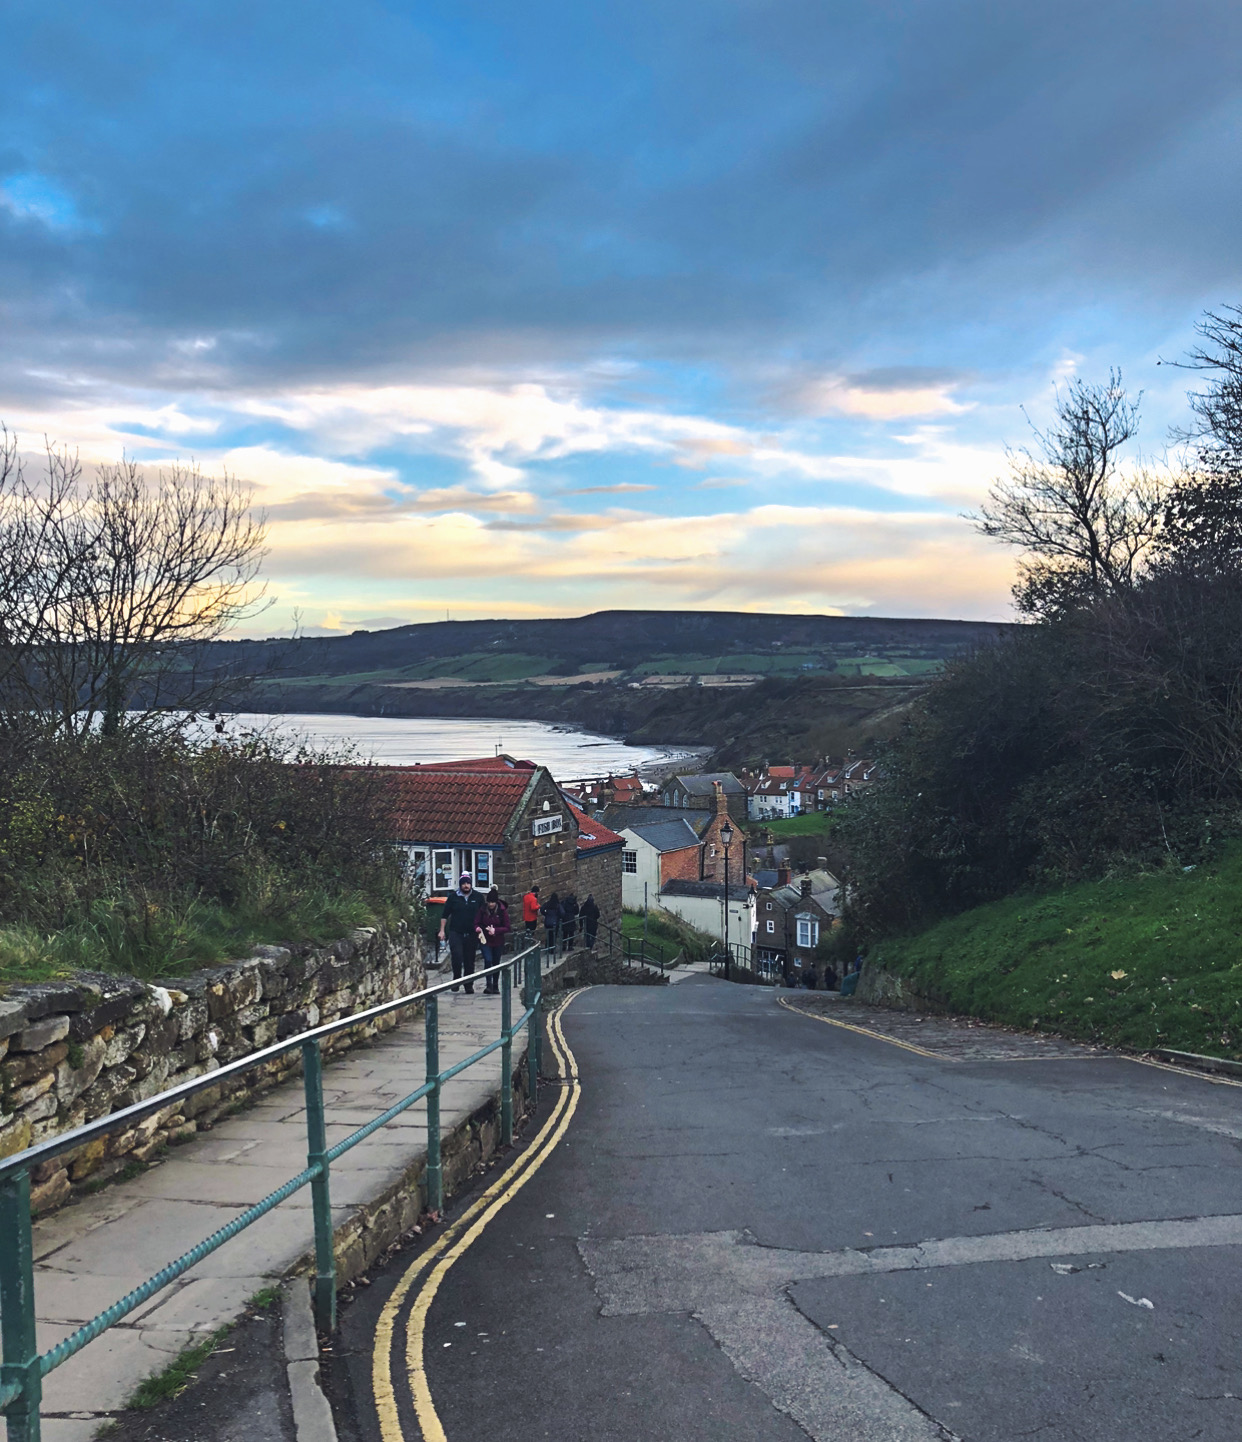 Robin Hood's Bay is a must visit location if you are spending a week in Whitby